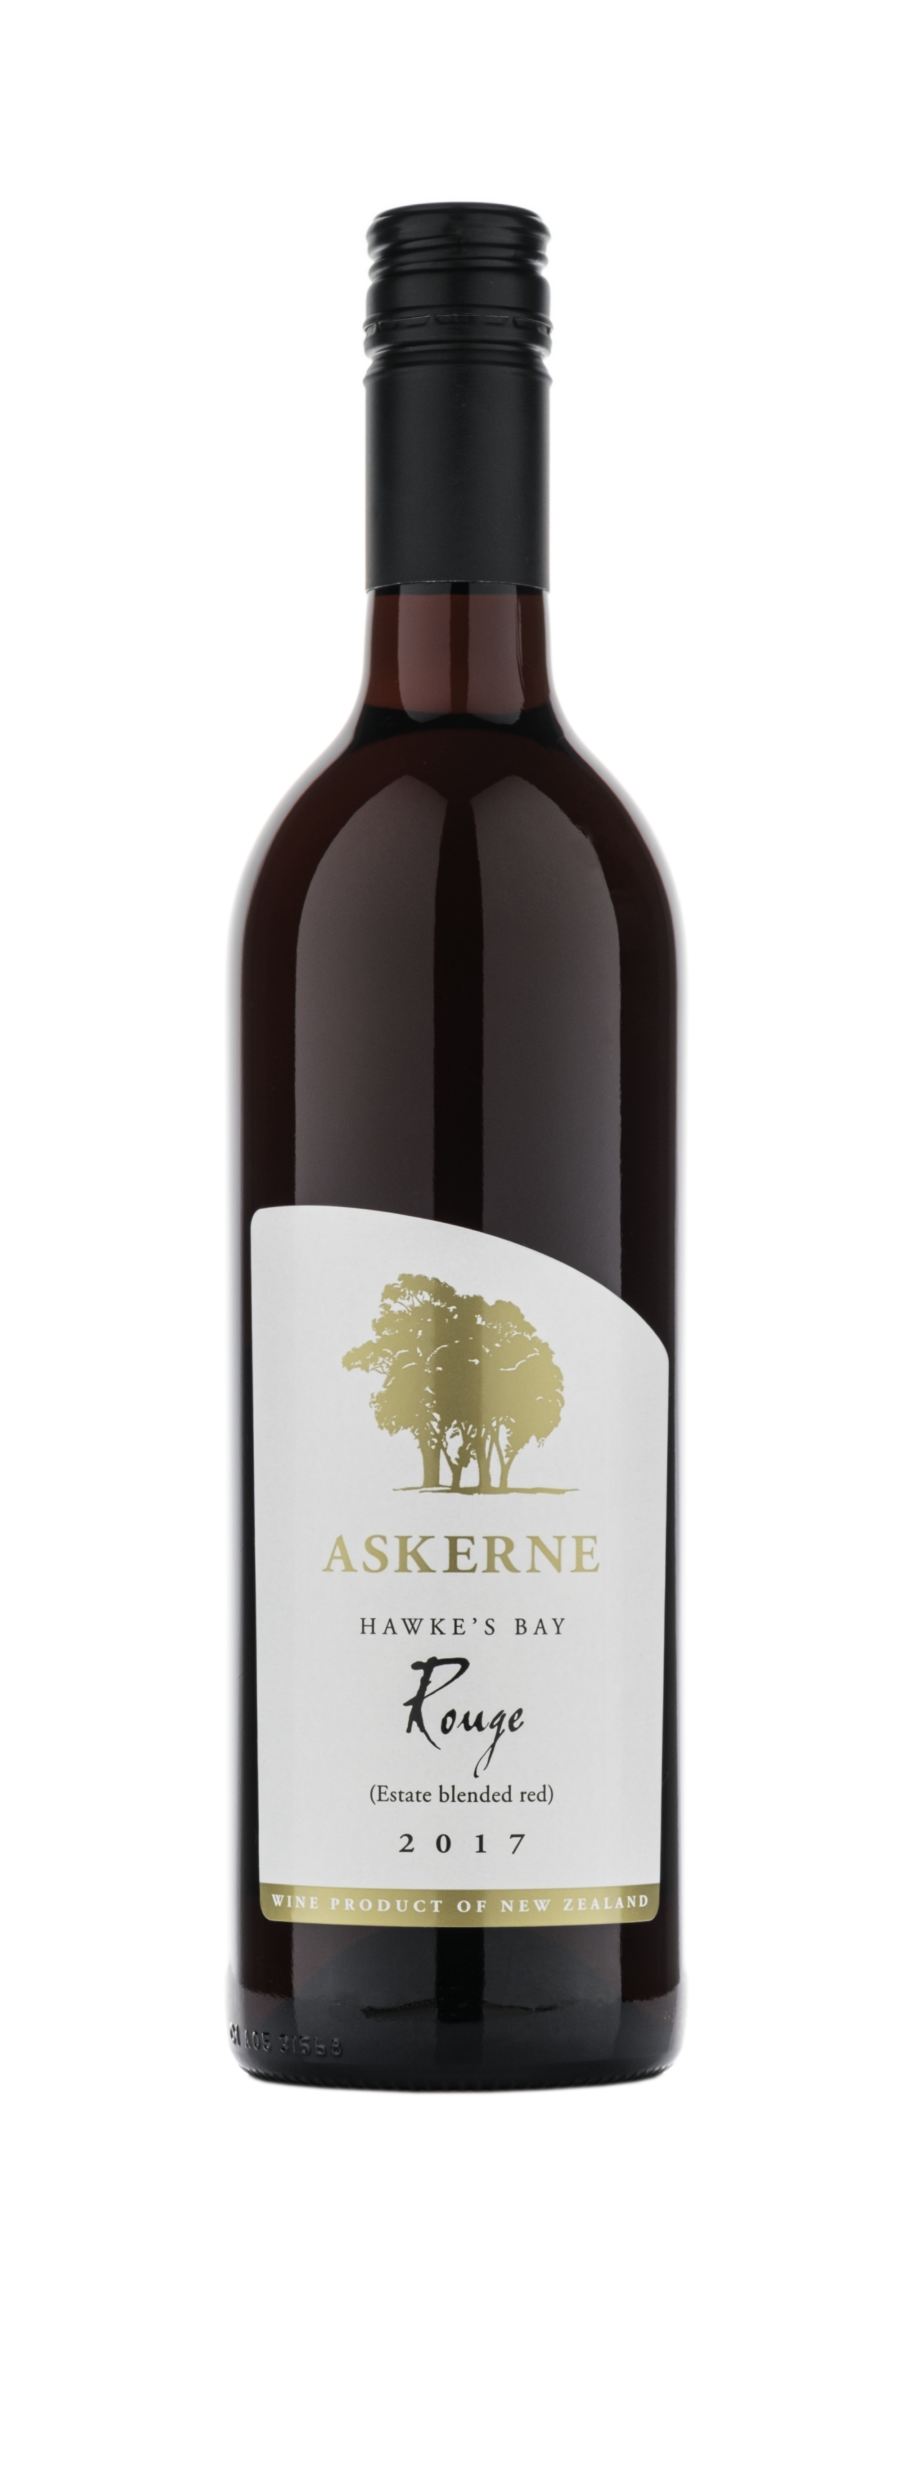 Cheap and cheerful red wine from Hawkes Bay New Zealand